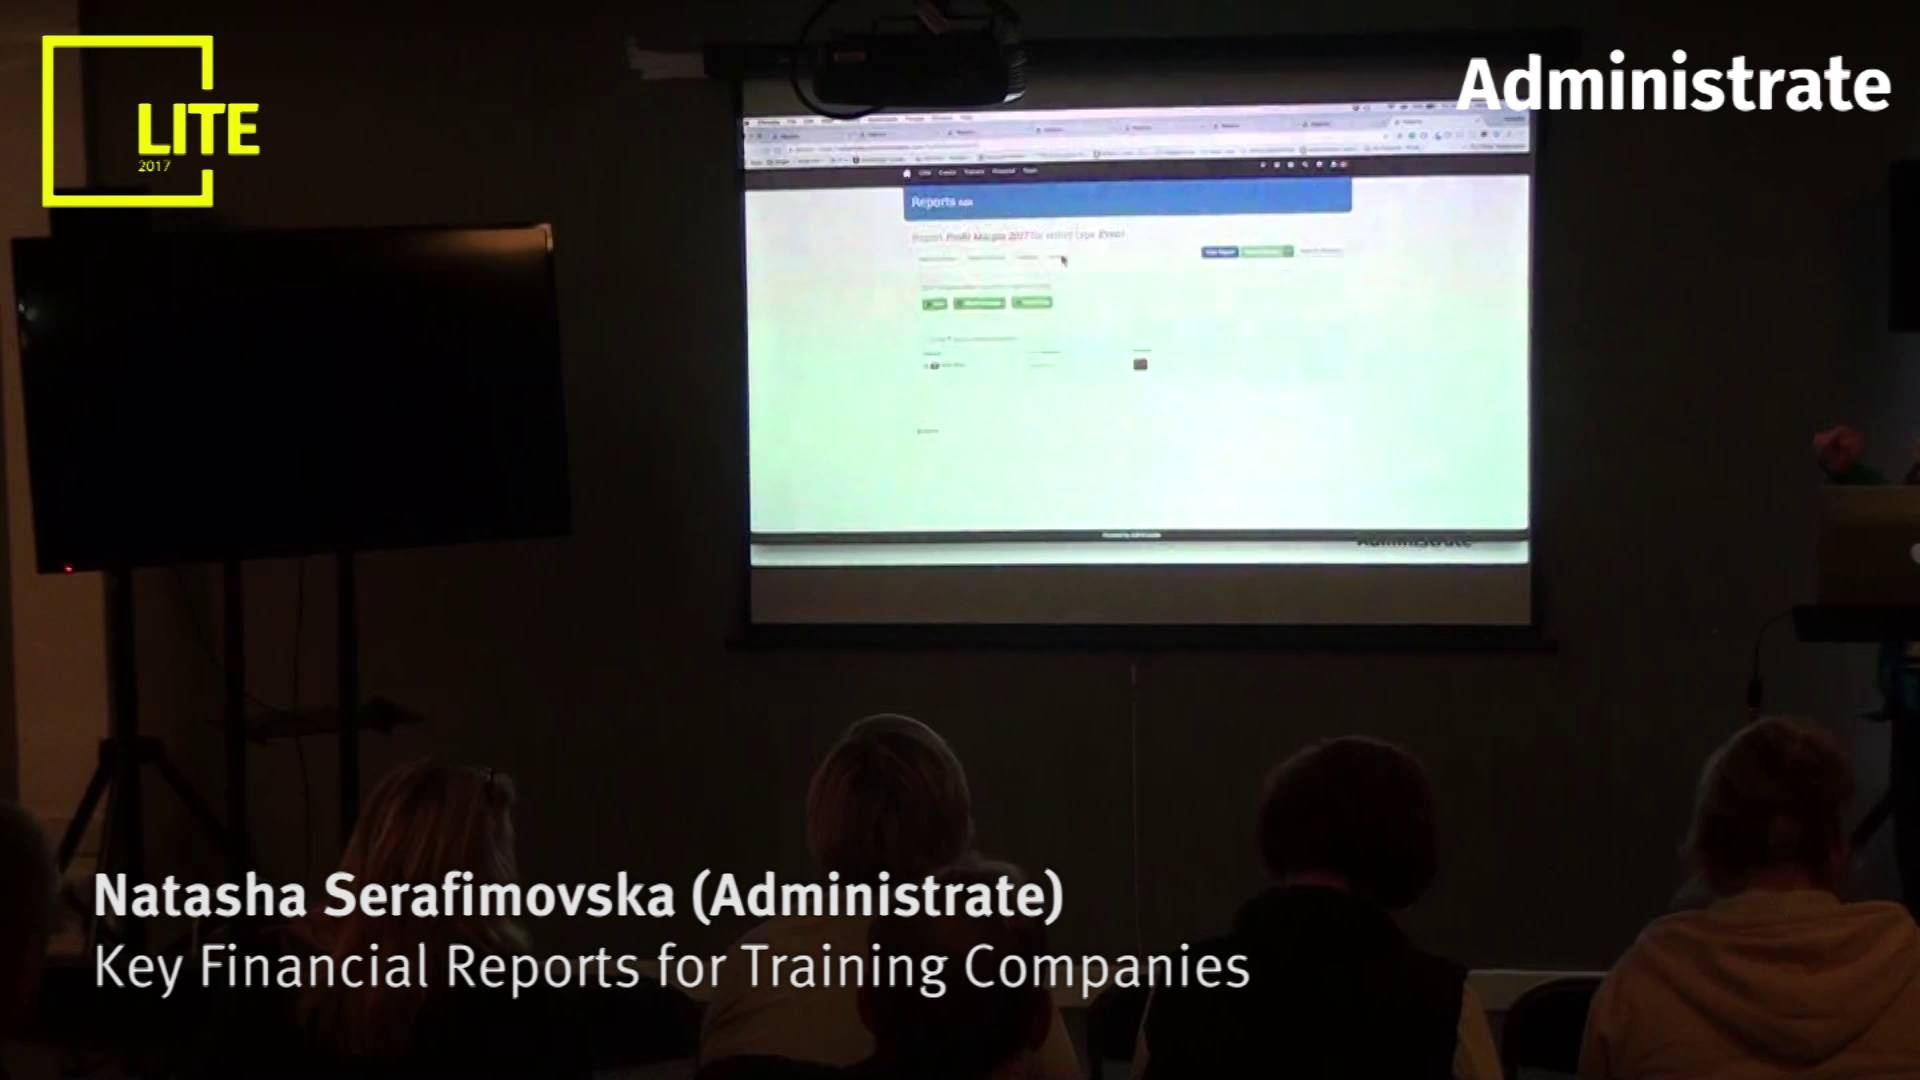 Key Financial Reports for Training Companies [Natasha Serafimovska]